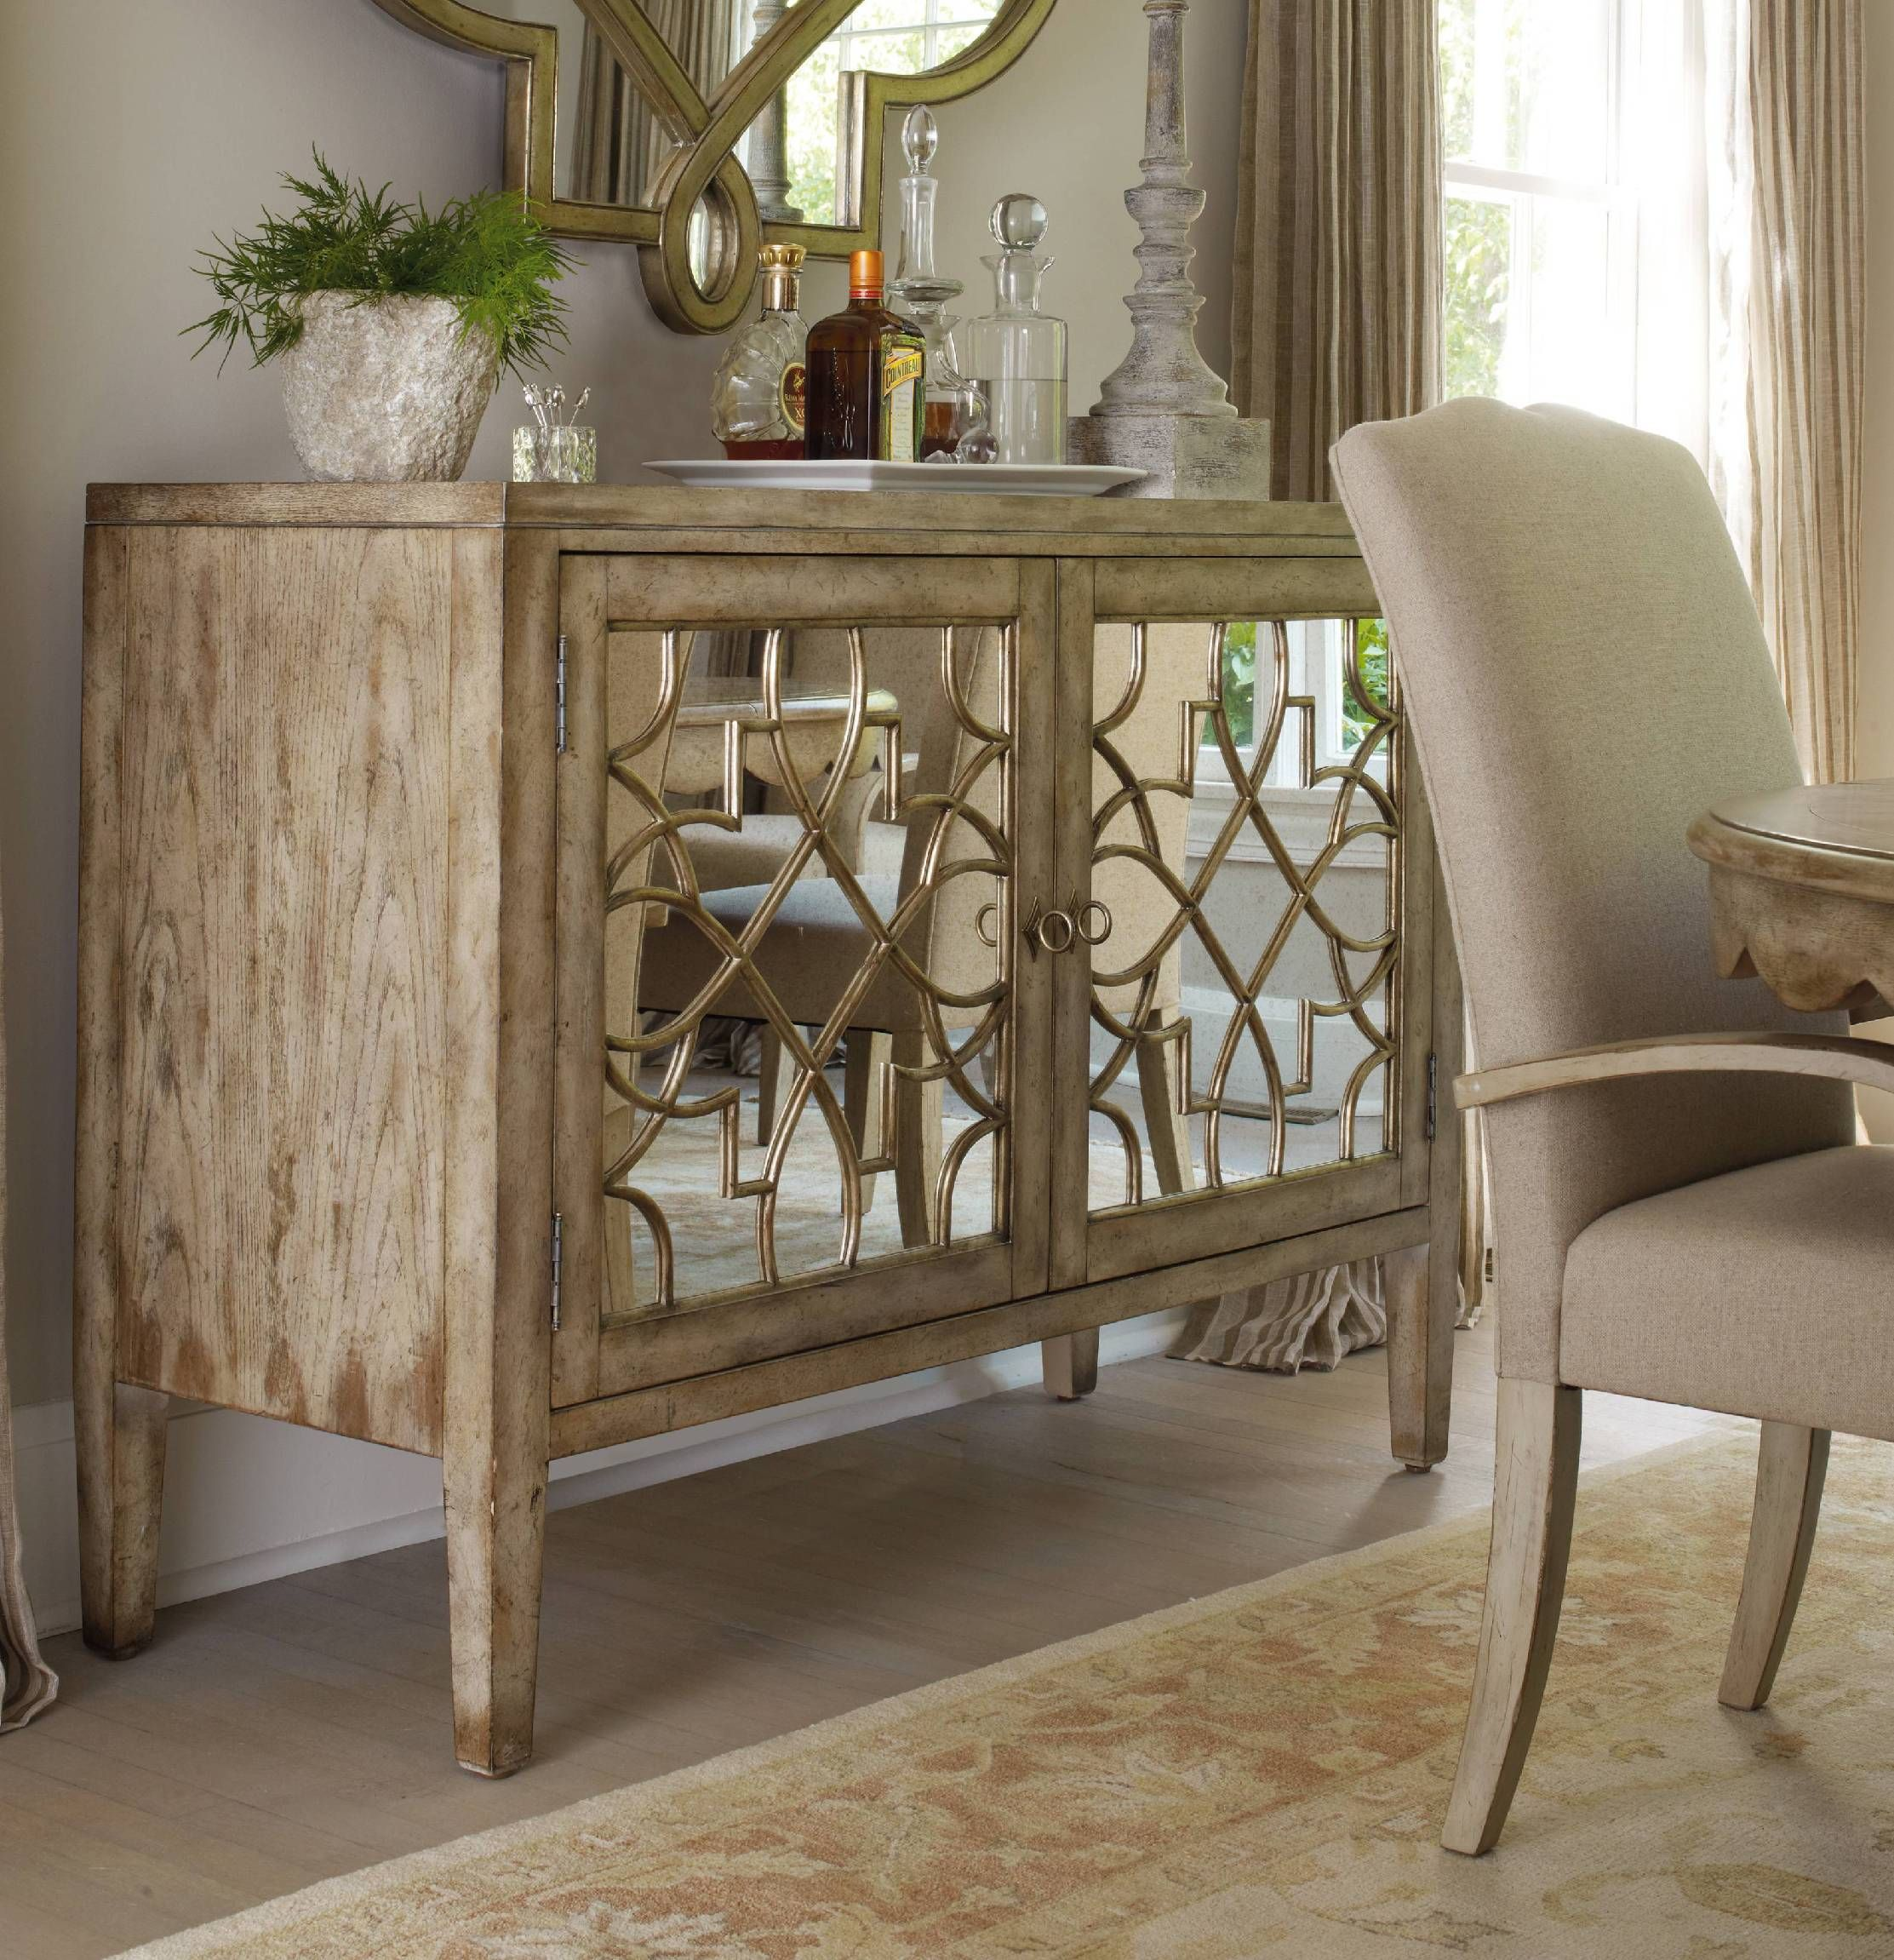 Hooker Furniture Living Room Sanctuary Two Door Mirrored Console Surf Visage Sku 3013 85002